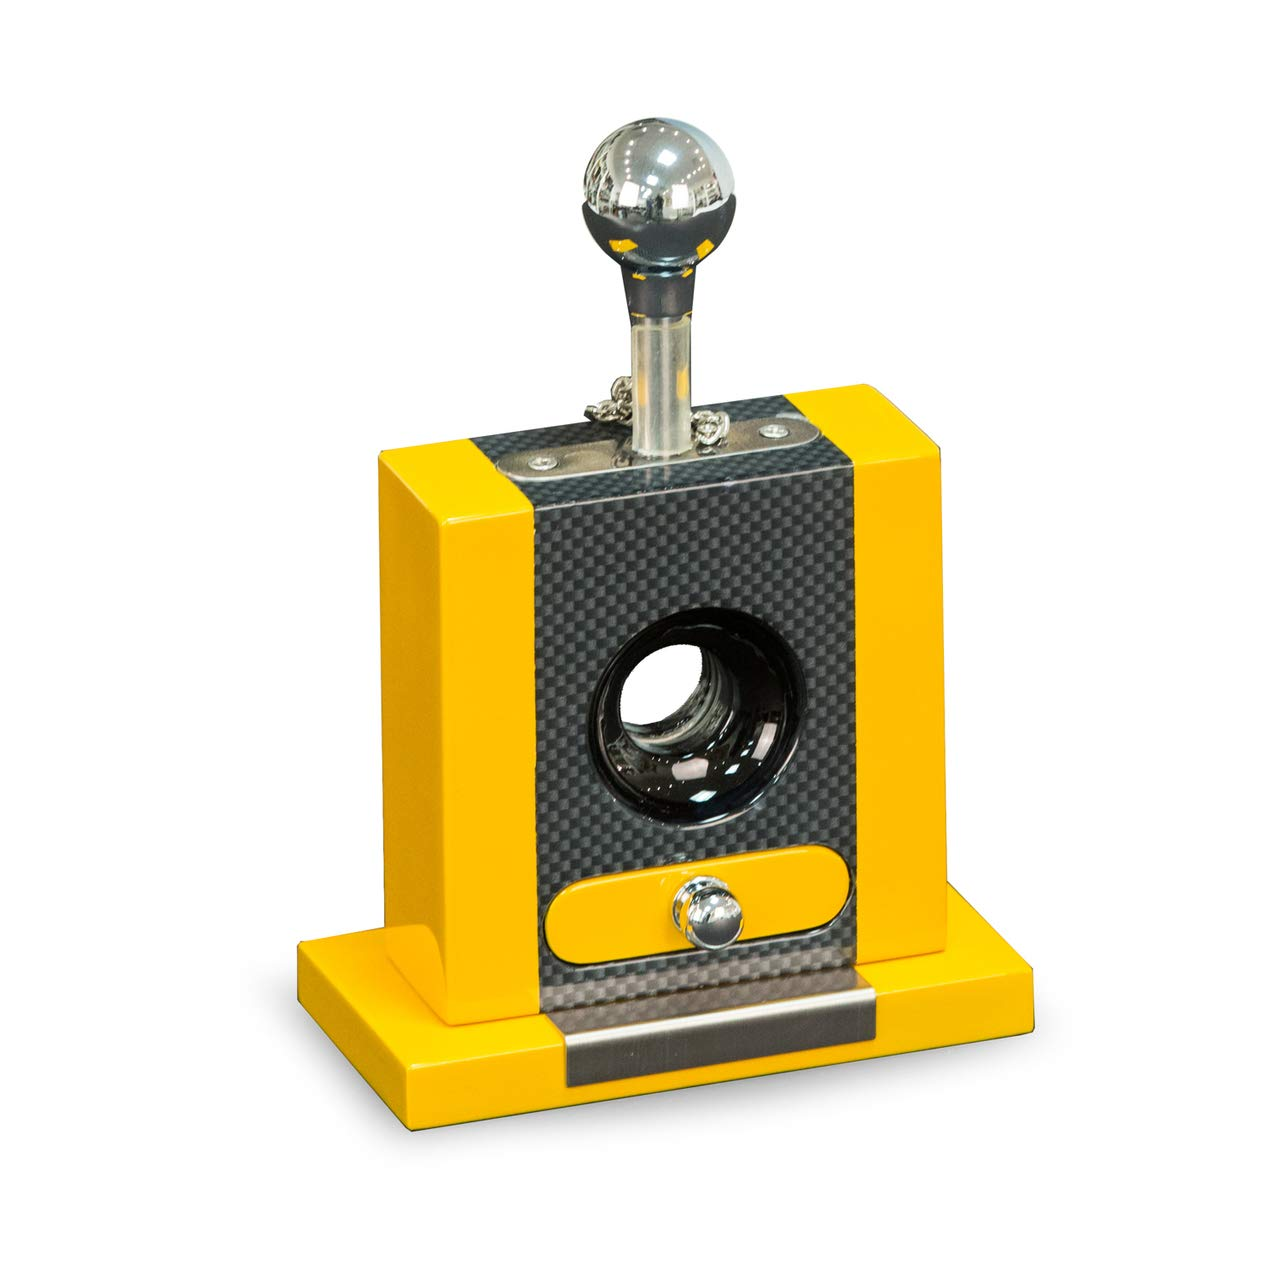 Executive Carbon Fiber and Yellow Lacquered Wood Table Top Guillotine Cigar Cutter with Drawer for Cutting